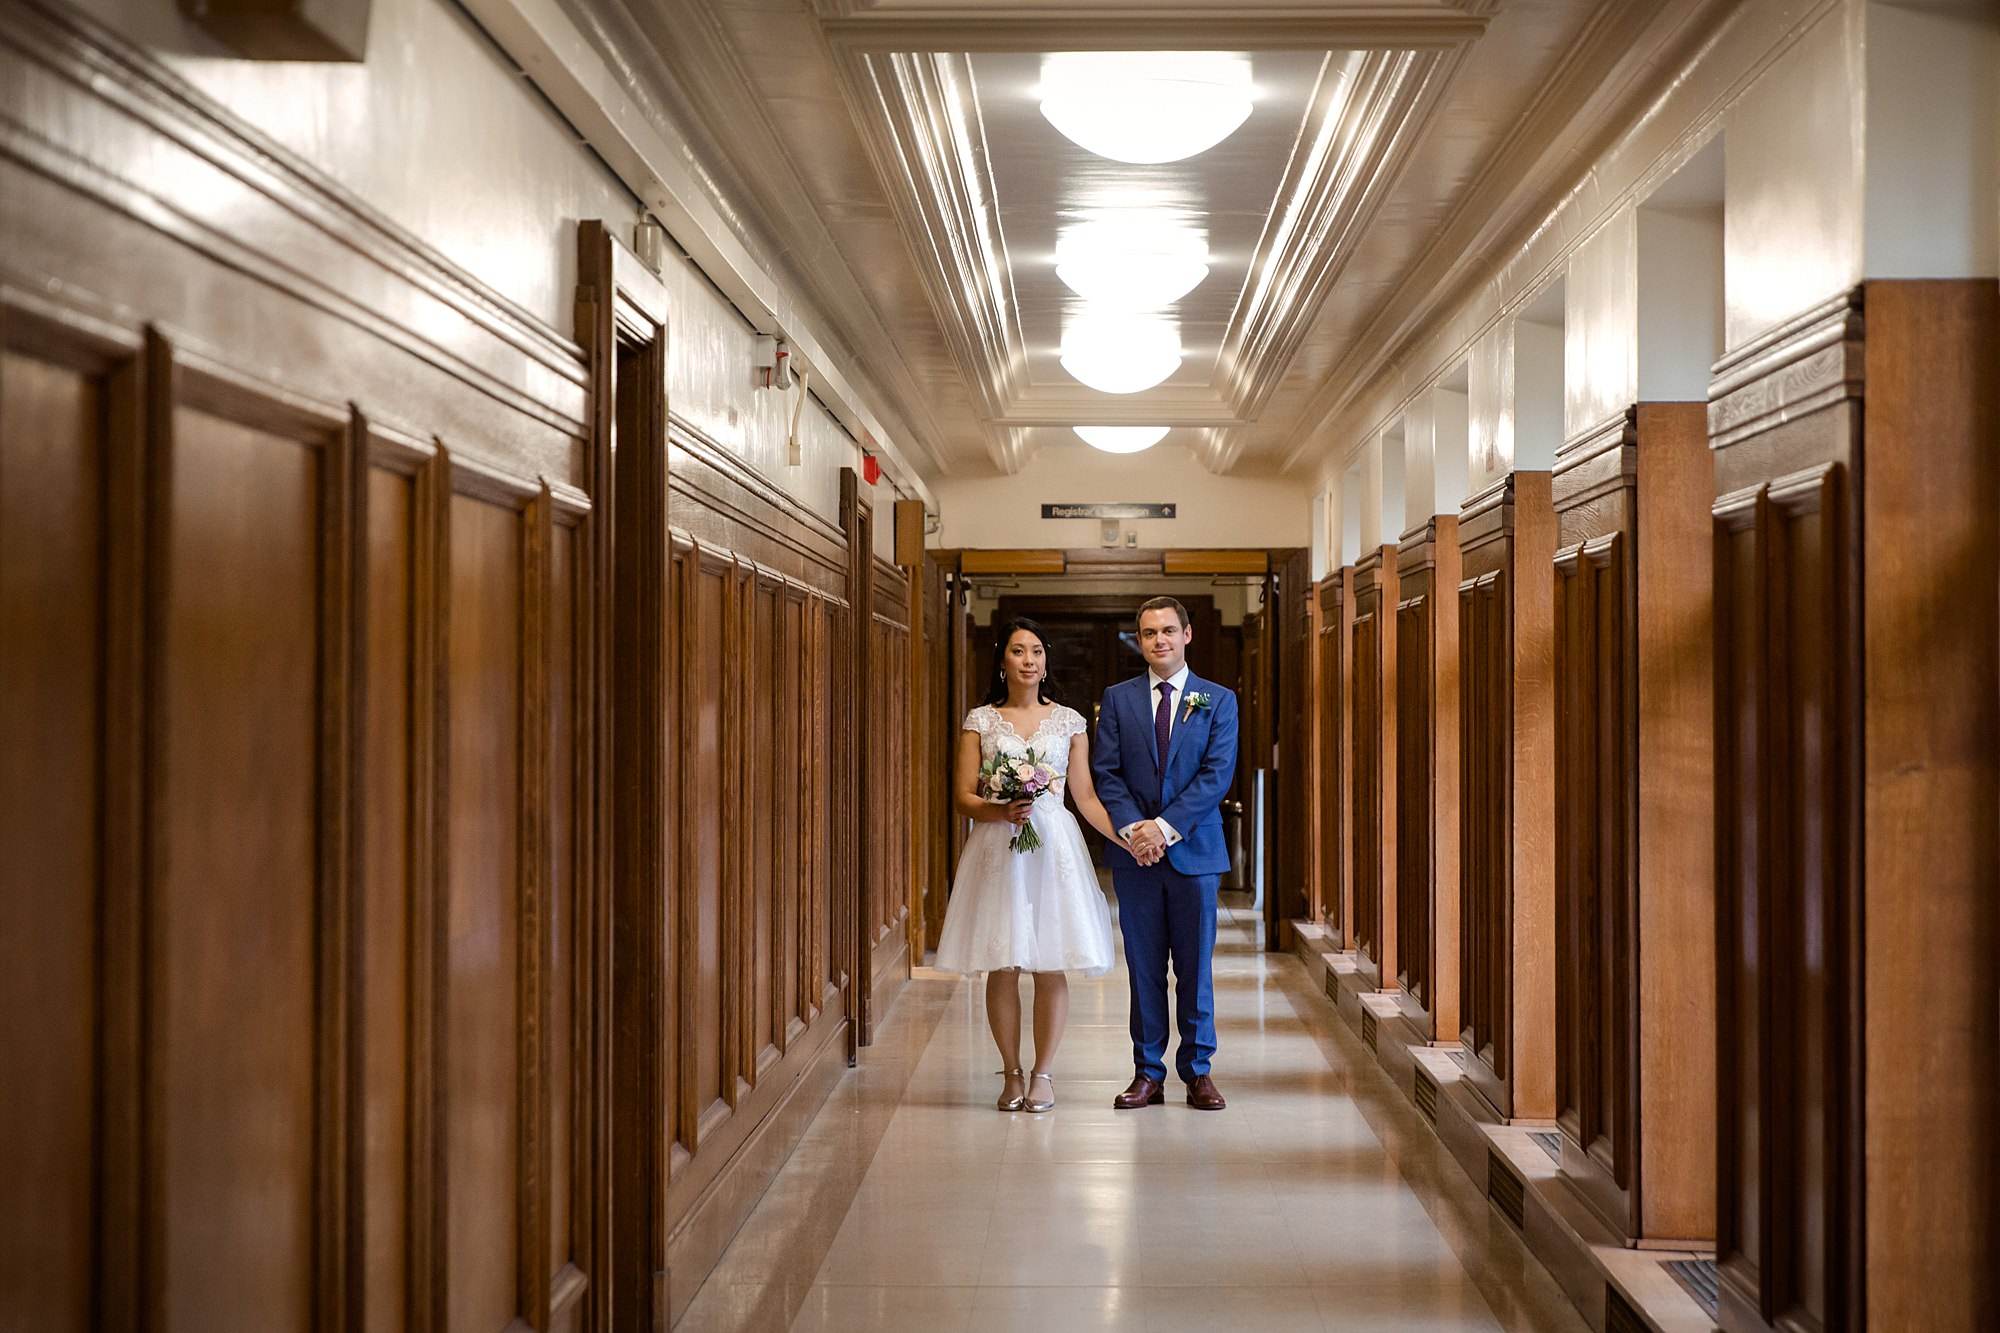 Wandsworth pub wedding couple in town hall